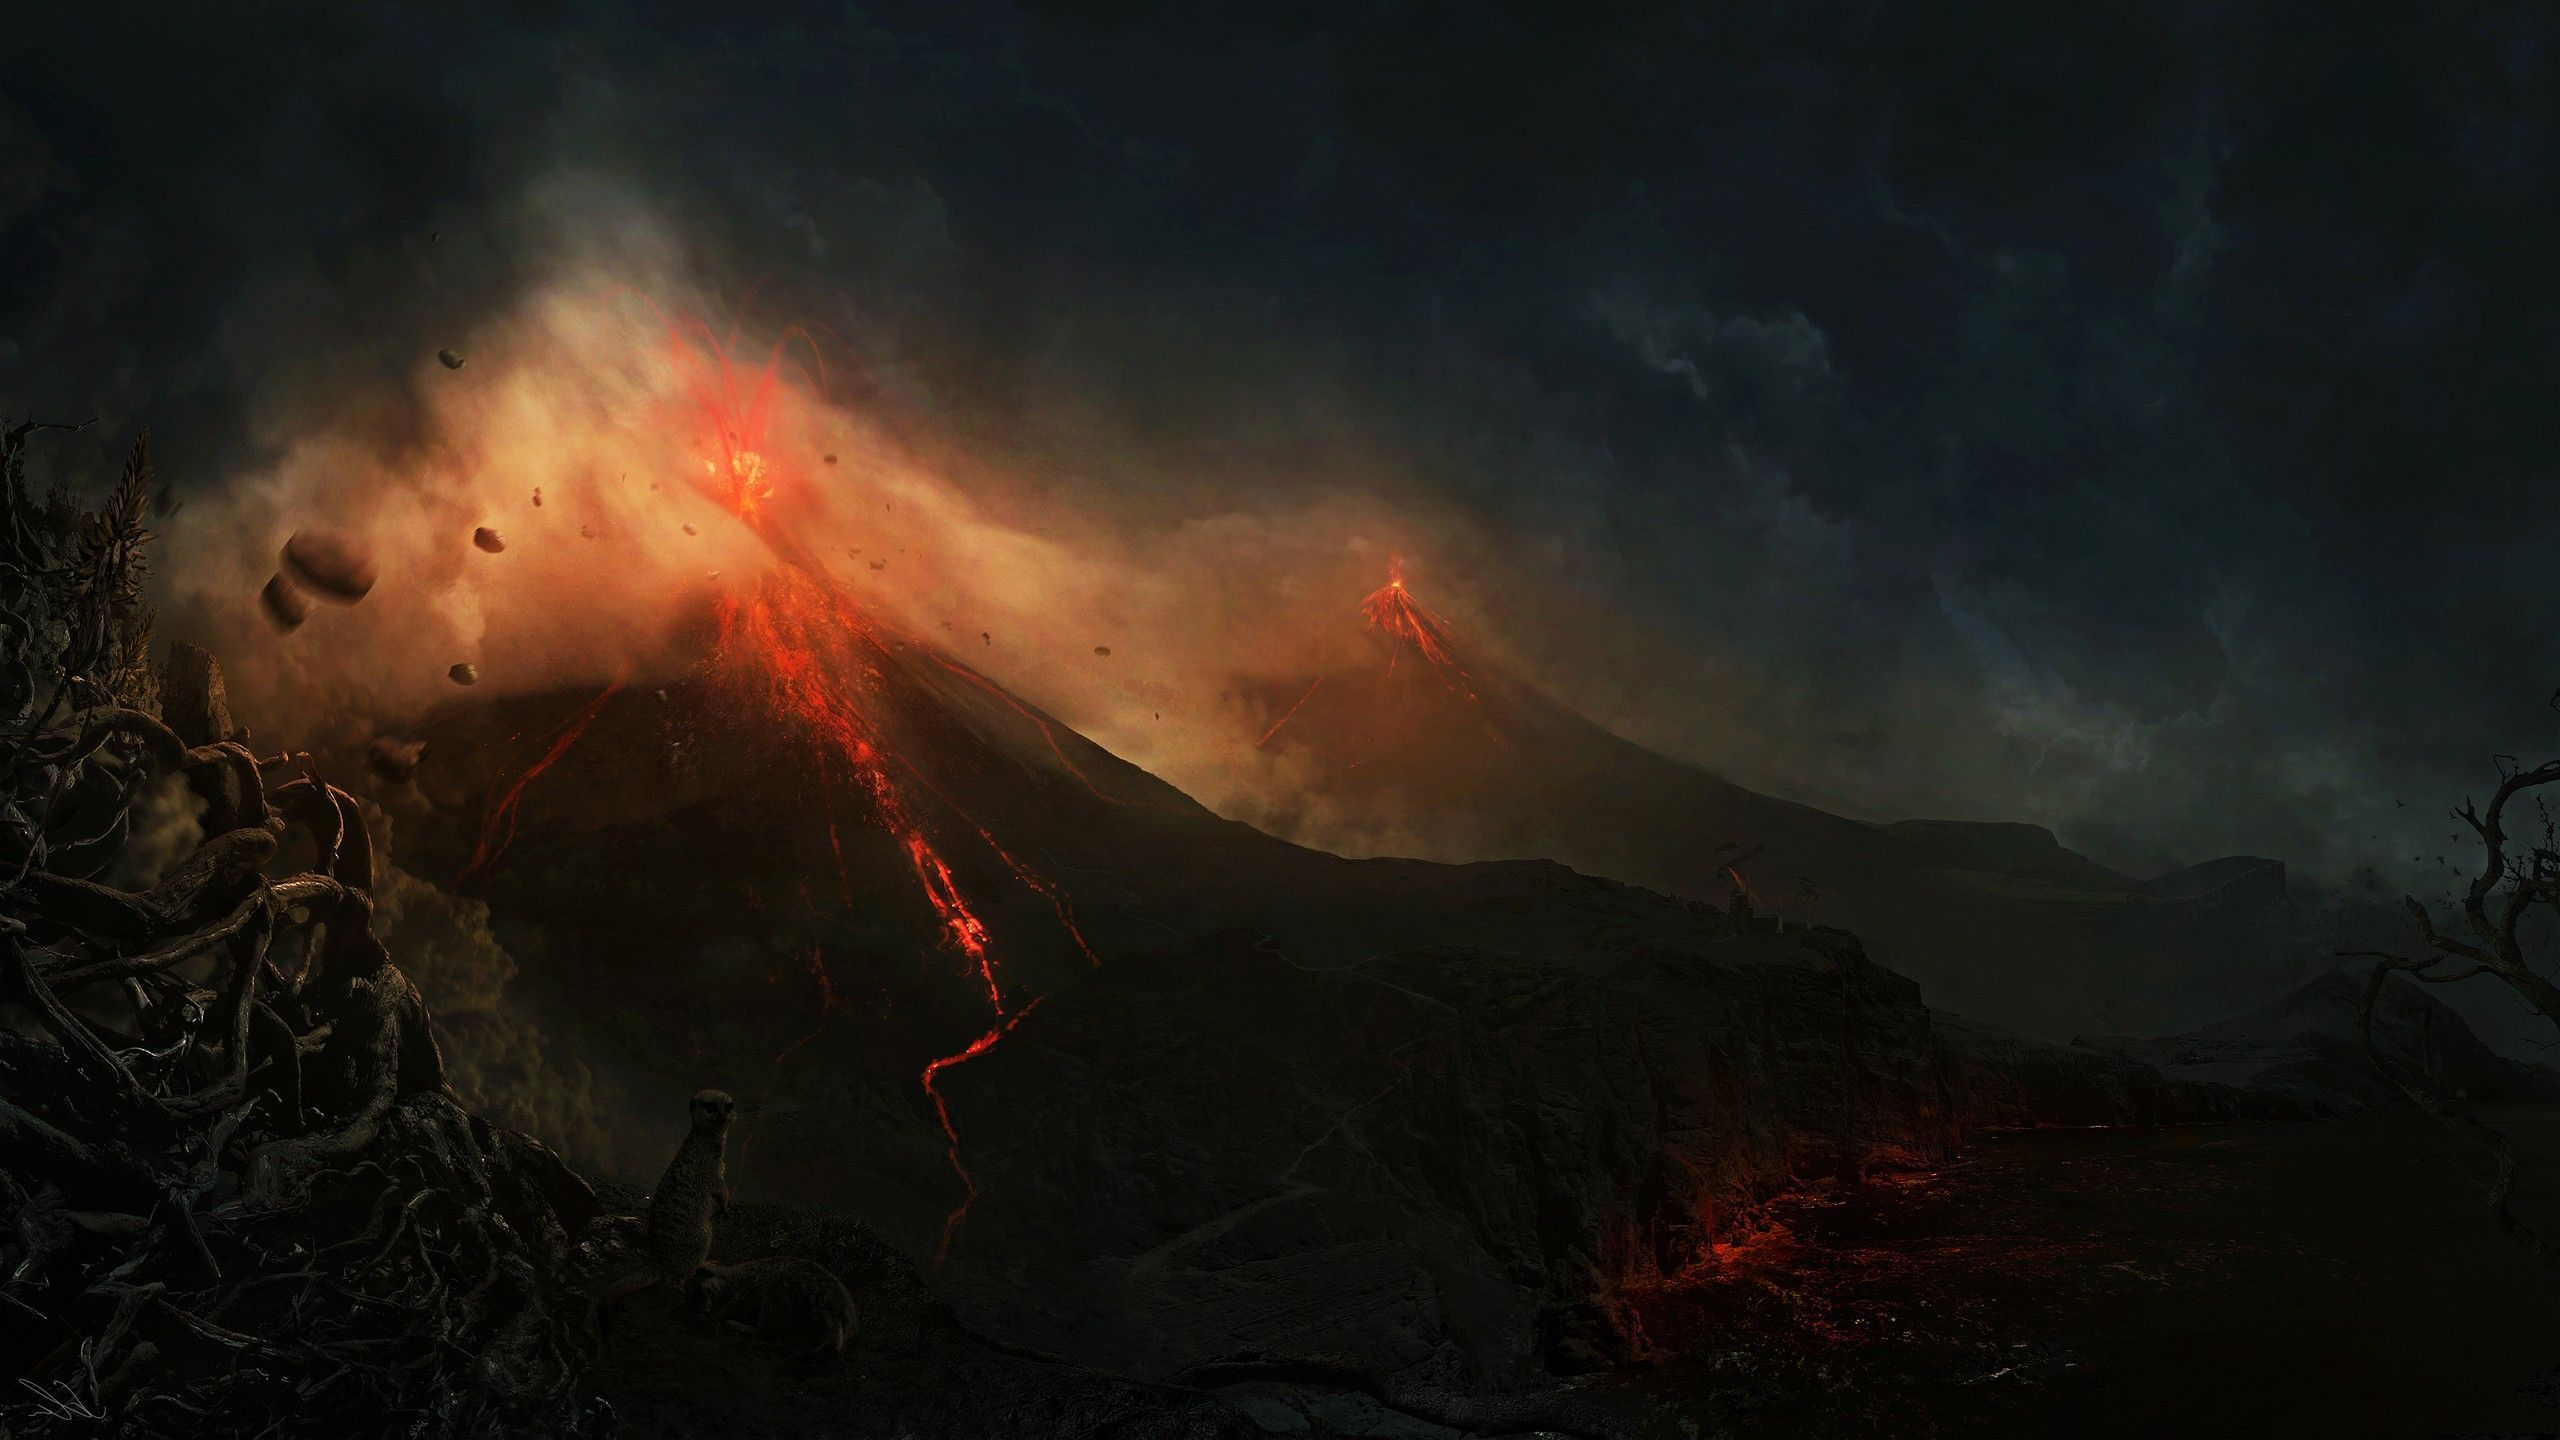 volcano eruption wallpaper hd - photo #9